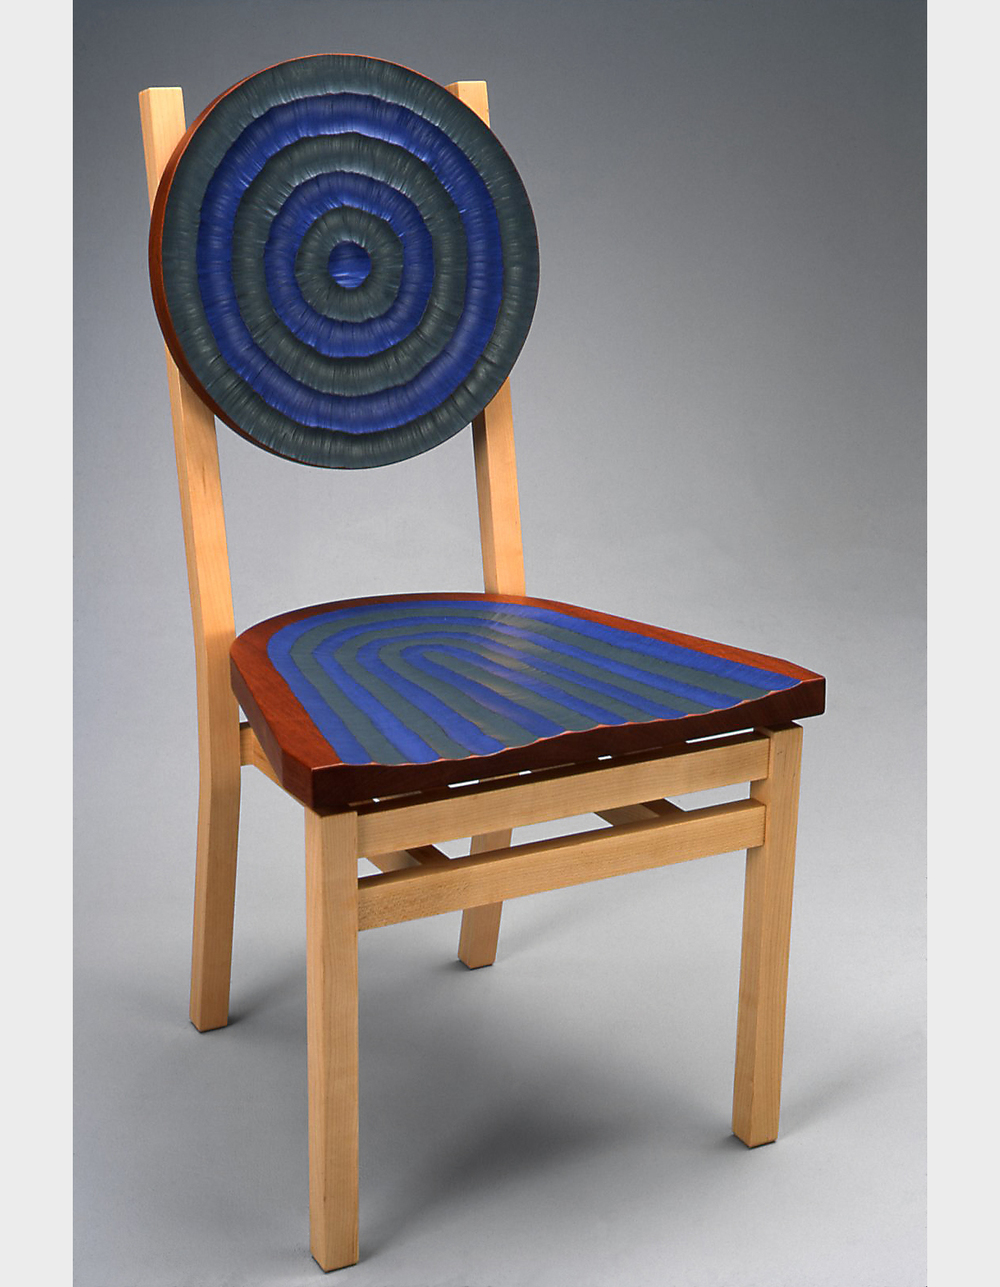 Chair Cubed  |  2003  |  wood, paint  |  39 x 22 x 21